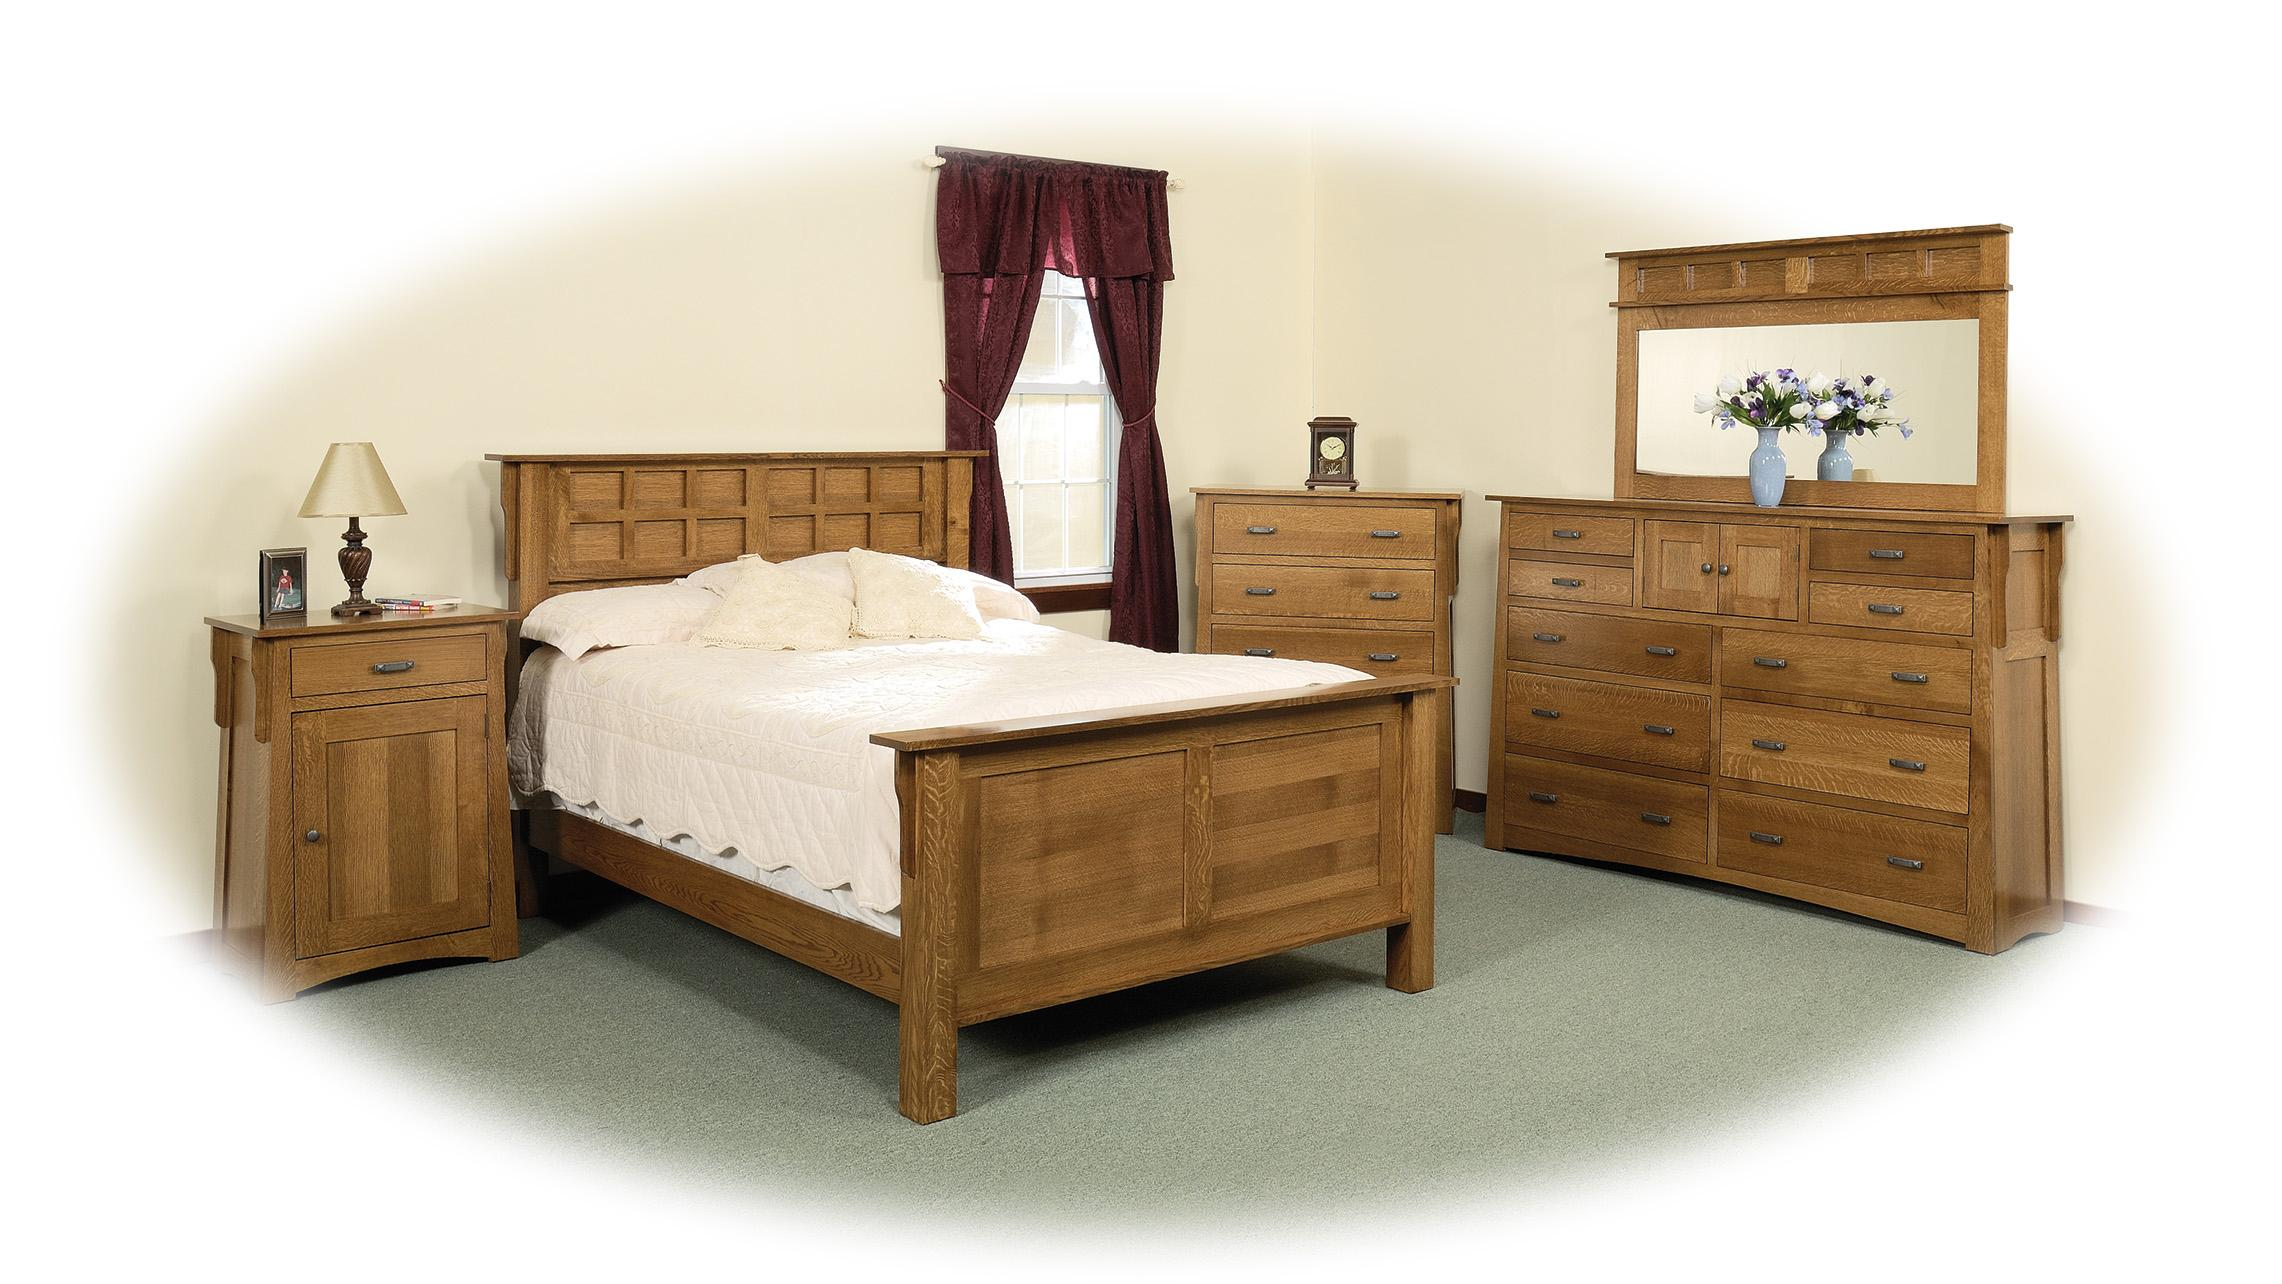 Arts crafts style bedroom furniture saugerties furniture for Arts and craft bedroom furniture